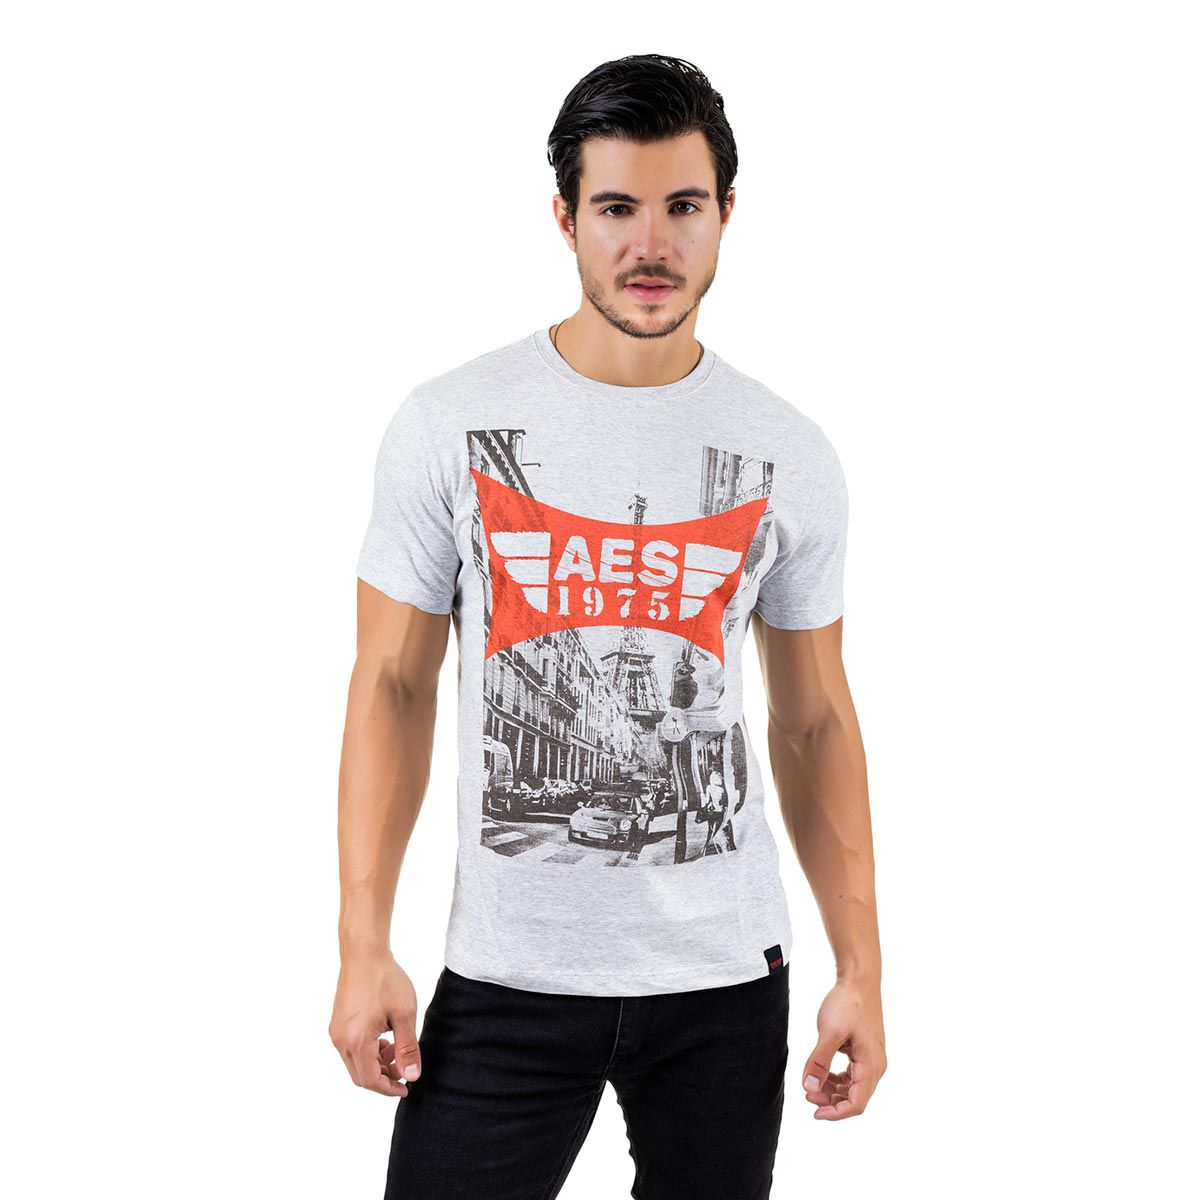 Camiseta AES 1975 Paris